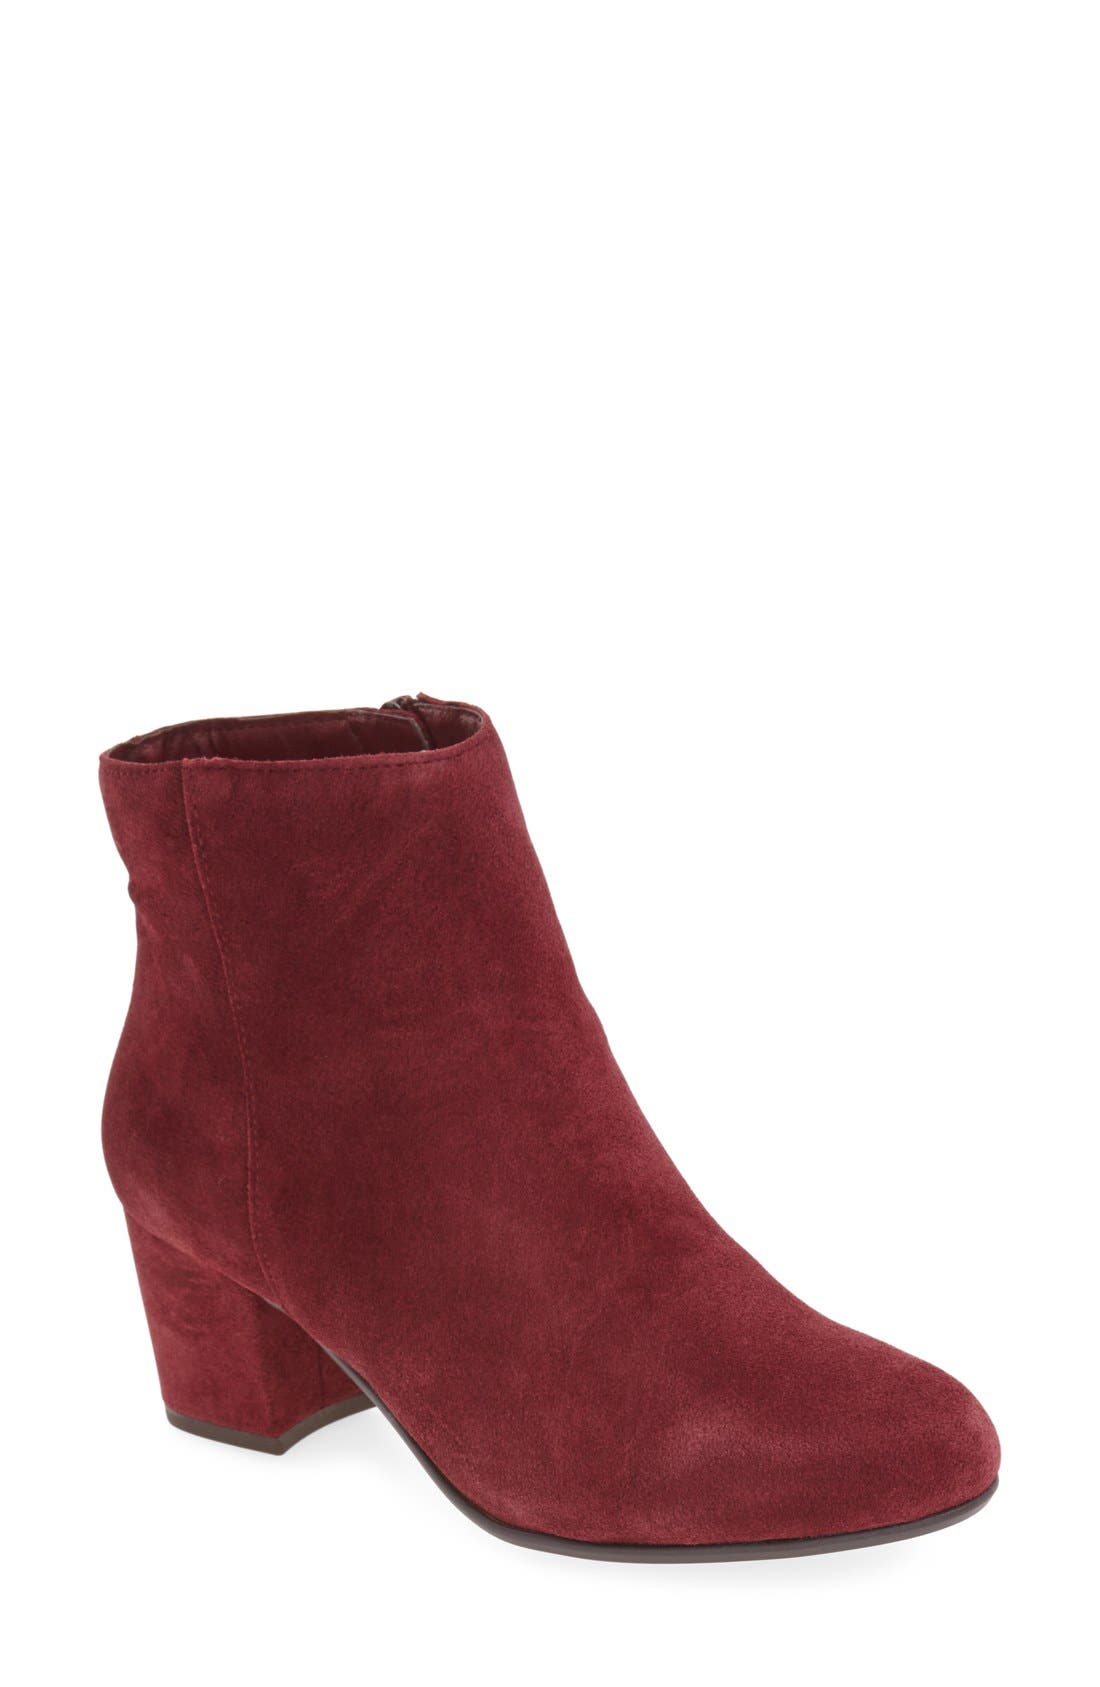 Holster Bootie,                         Main,                         color, Burgundy Suede